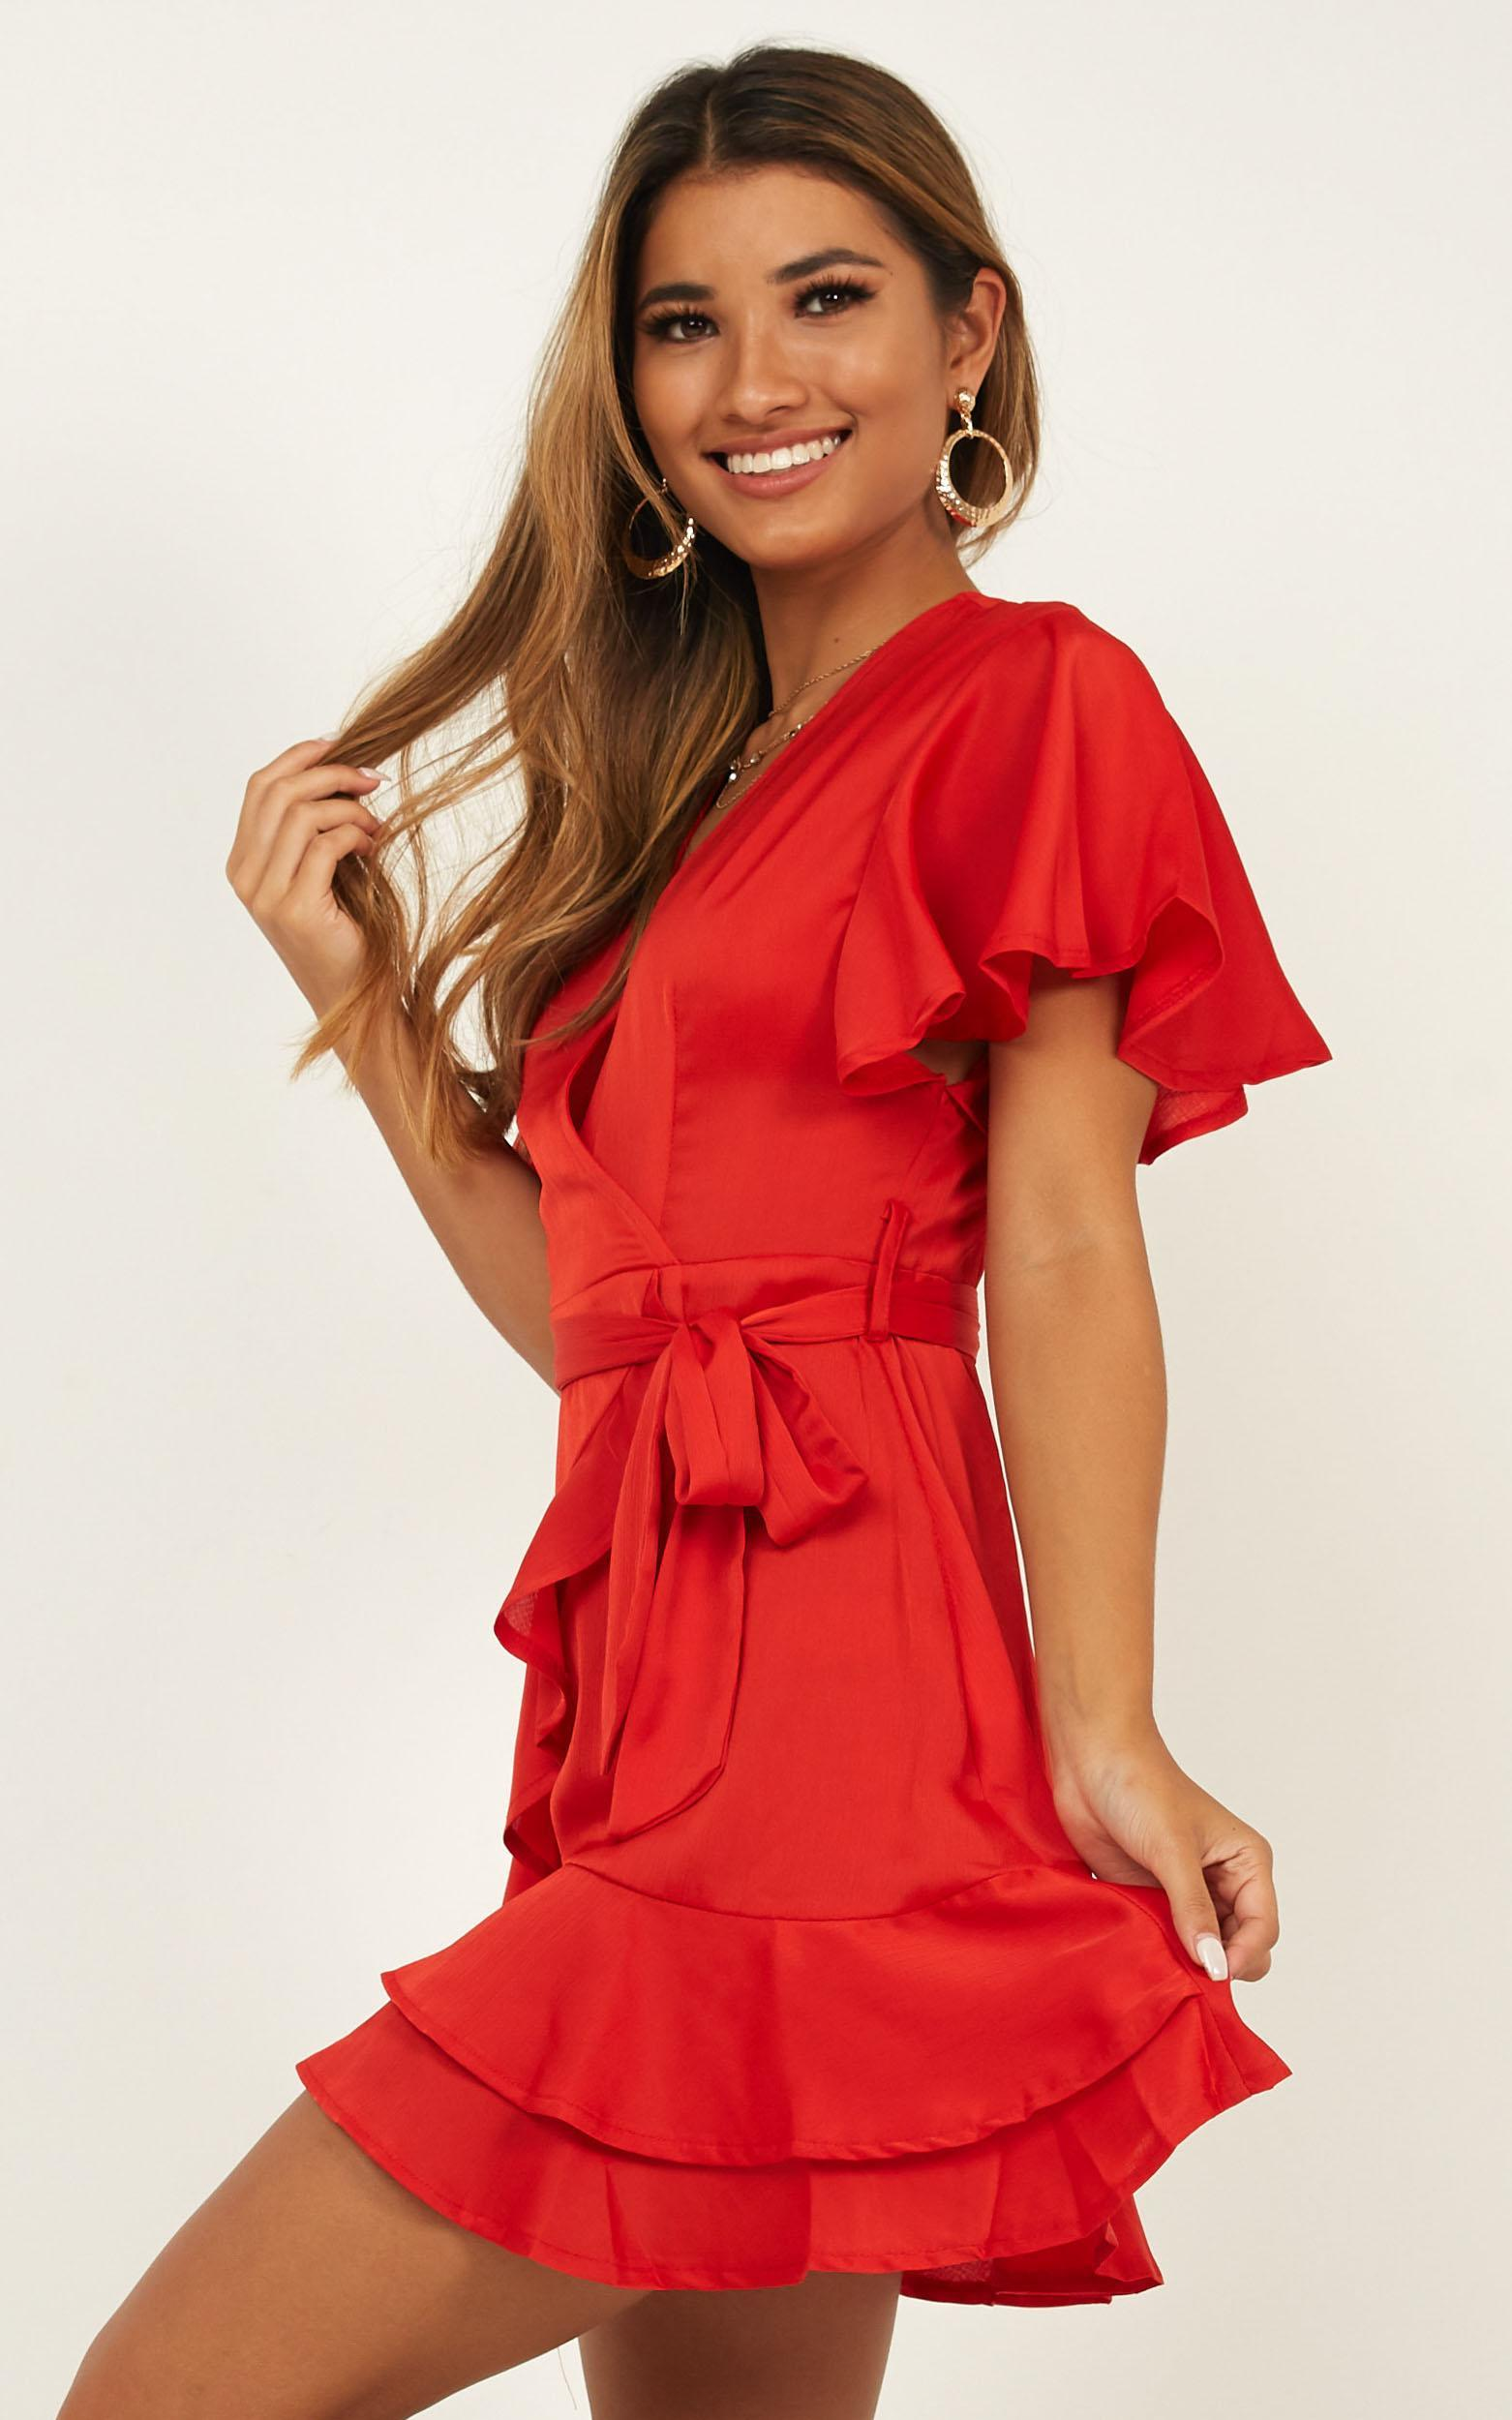 Thin Ice Dress in red satin - 12 (L), Red, hi-res image number null